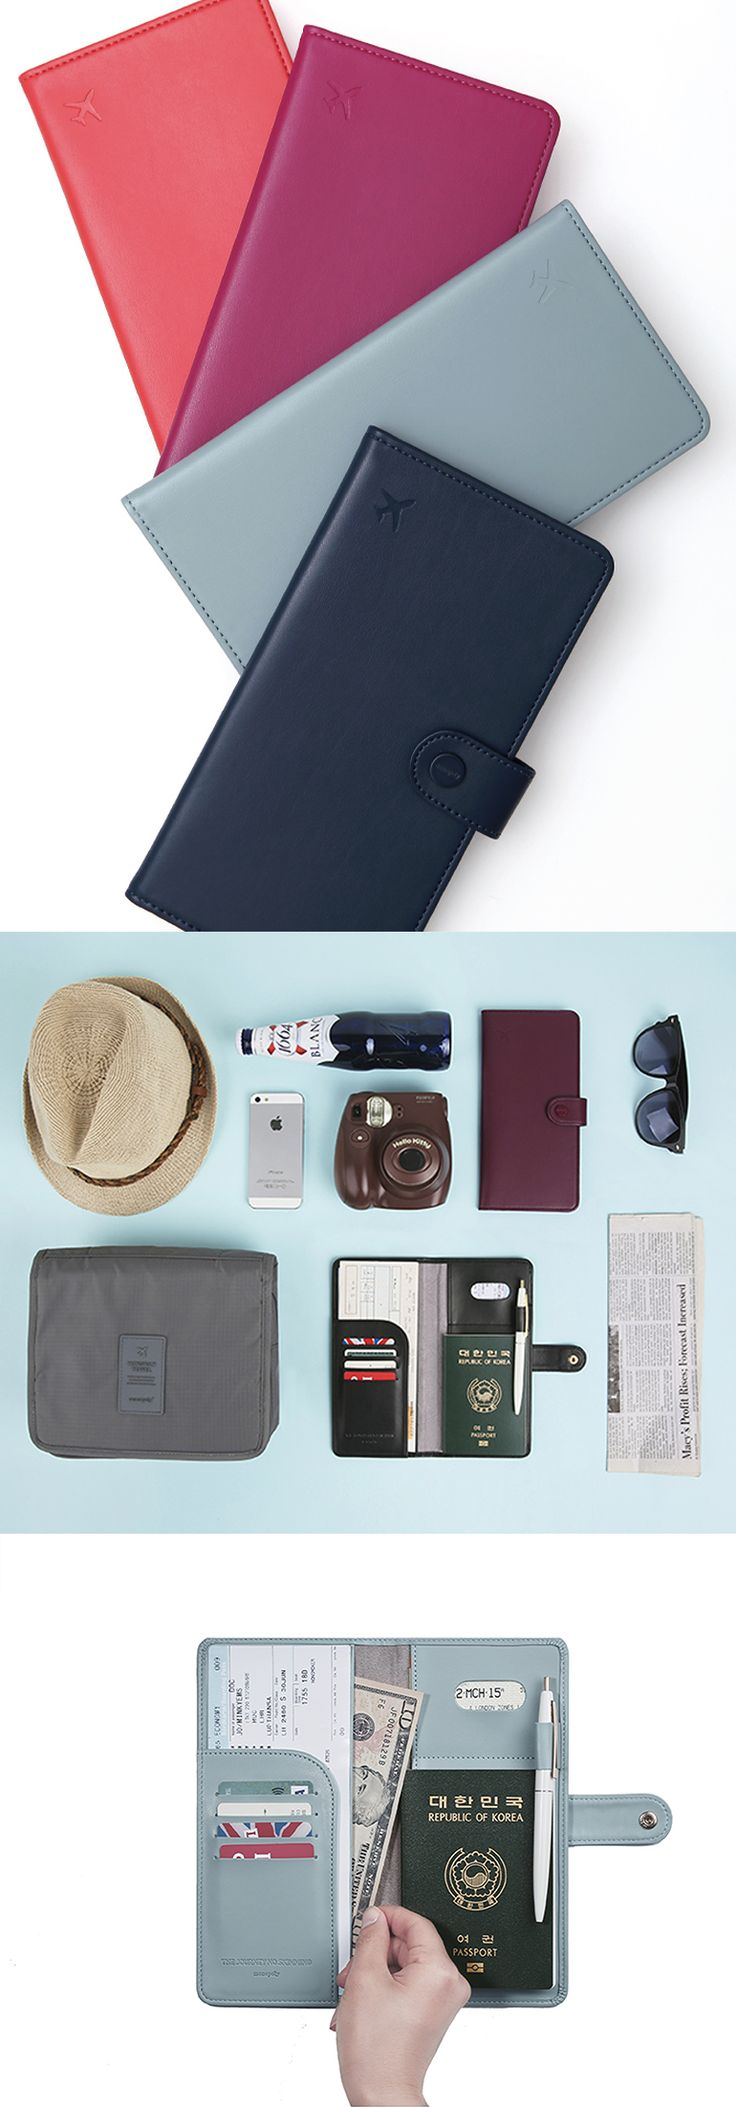 166 Best Gadgets Images On Pinterest New Technology Product Baseus Nappa Case For Ipad Mini 1 2 3 The Plane Anti Skimming Passport Wallet Is One Of Many Adorable And Functional Products In Mochithings Collection